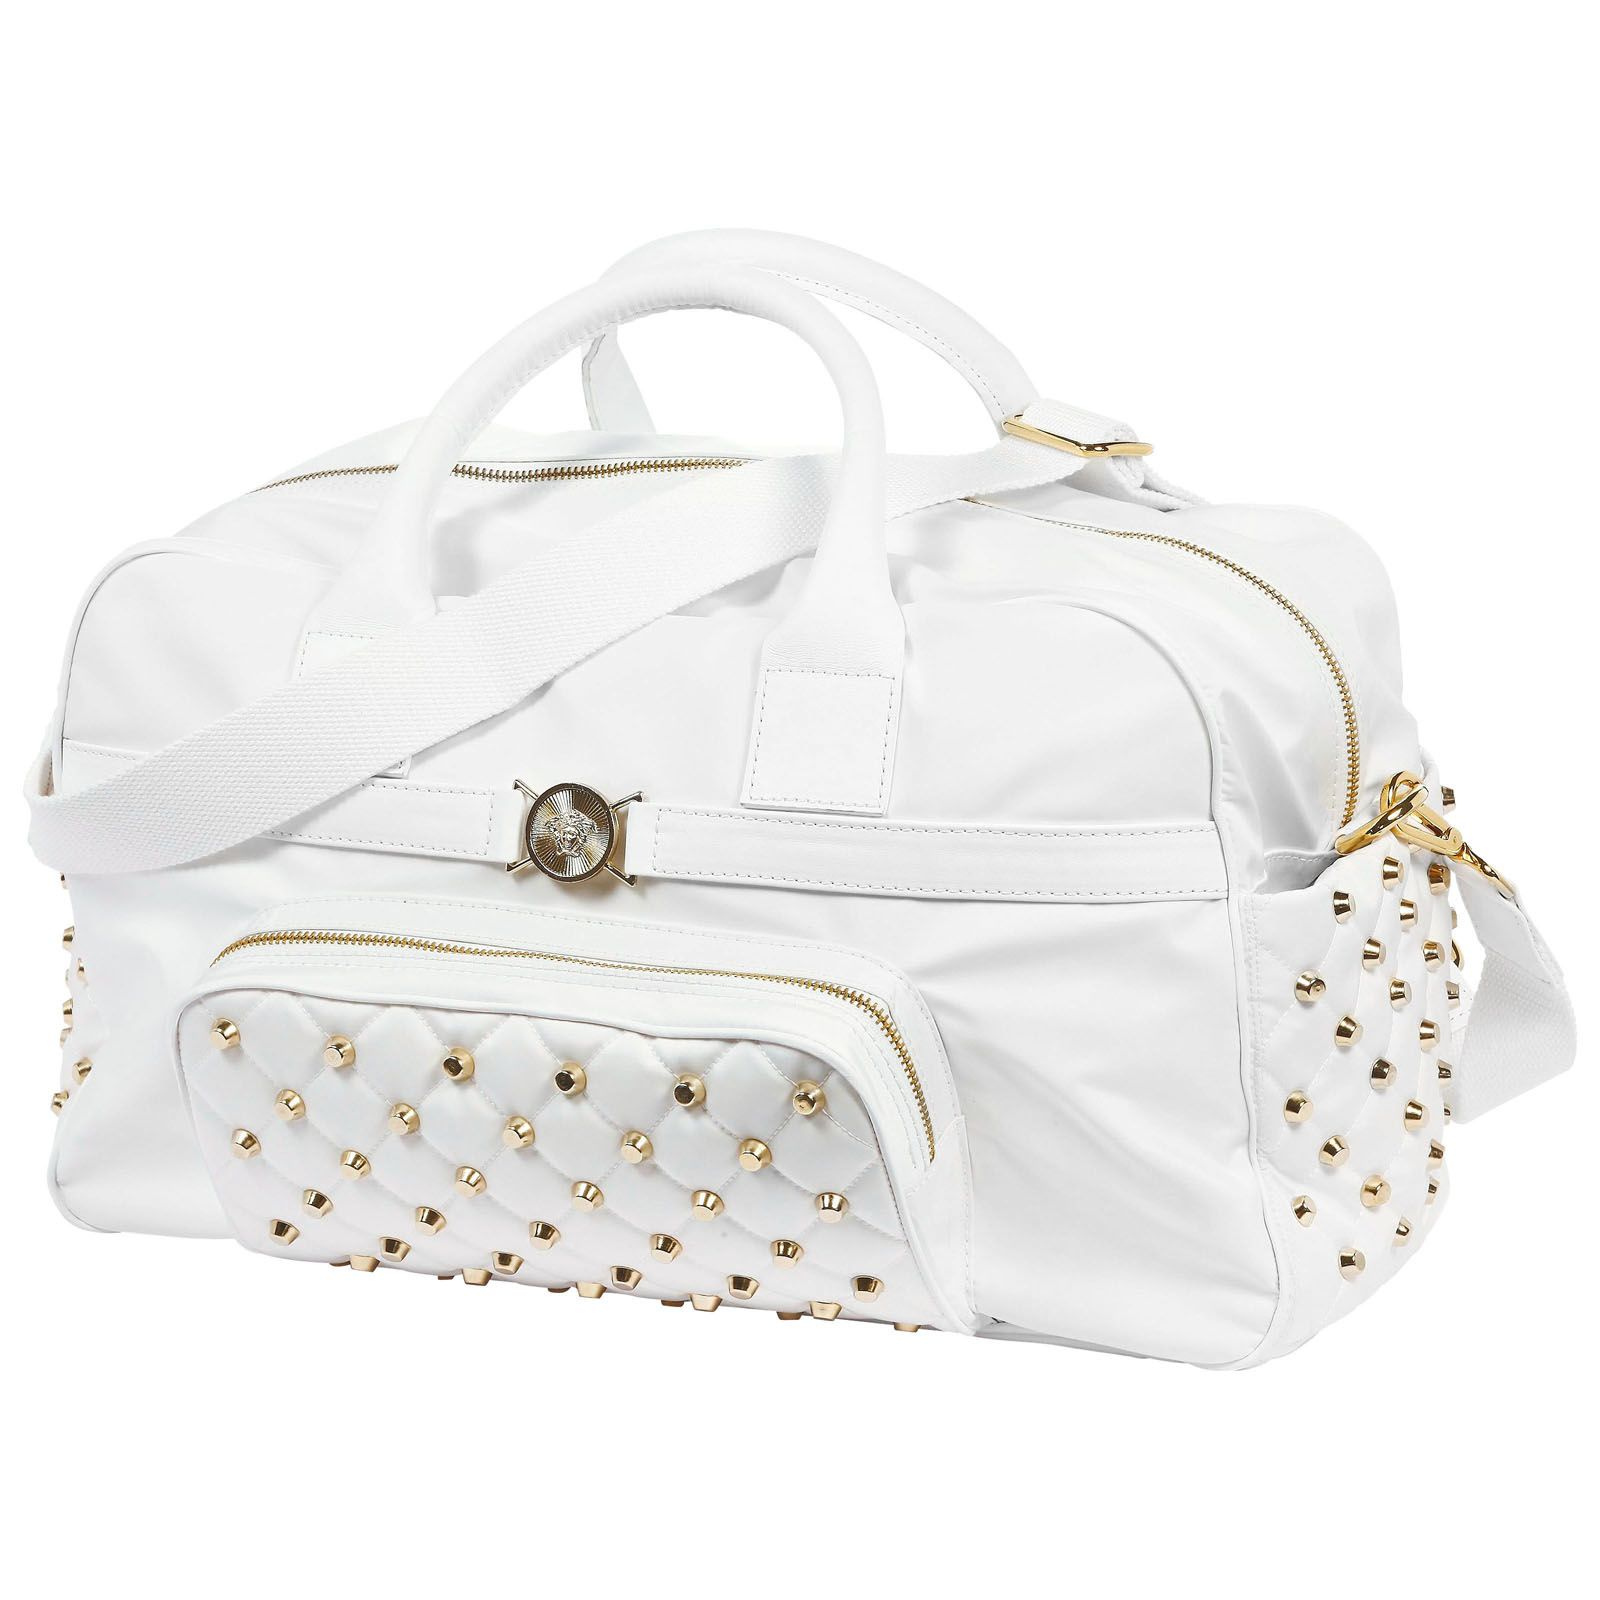 Nappy bag: Young Versace White imitation leather travel bag ...